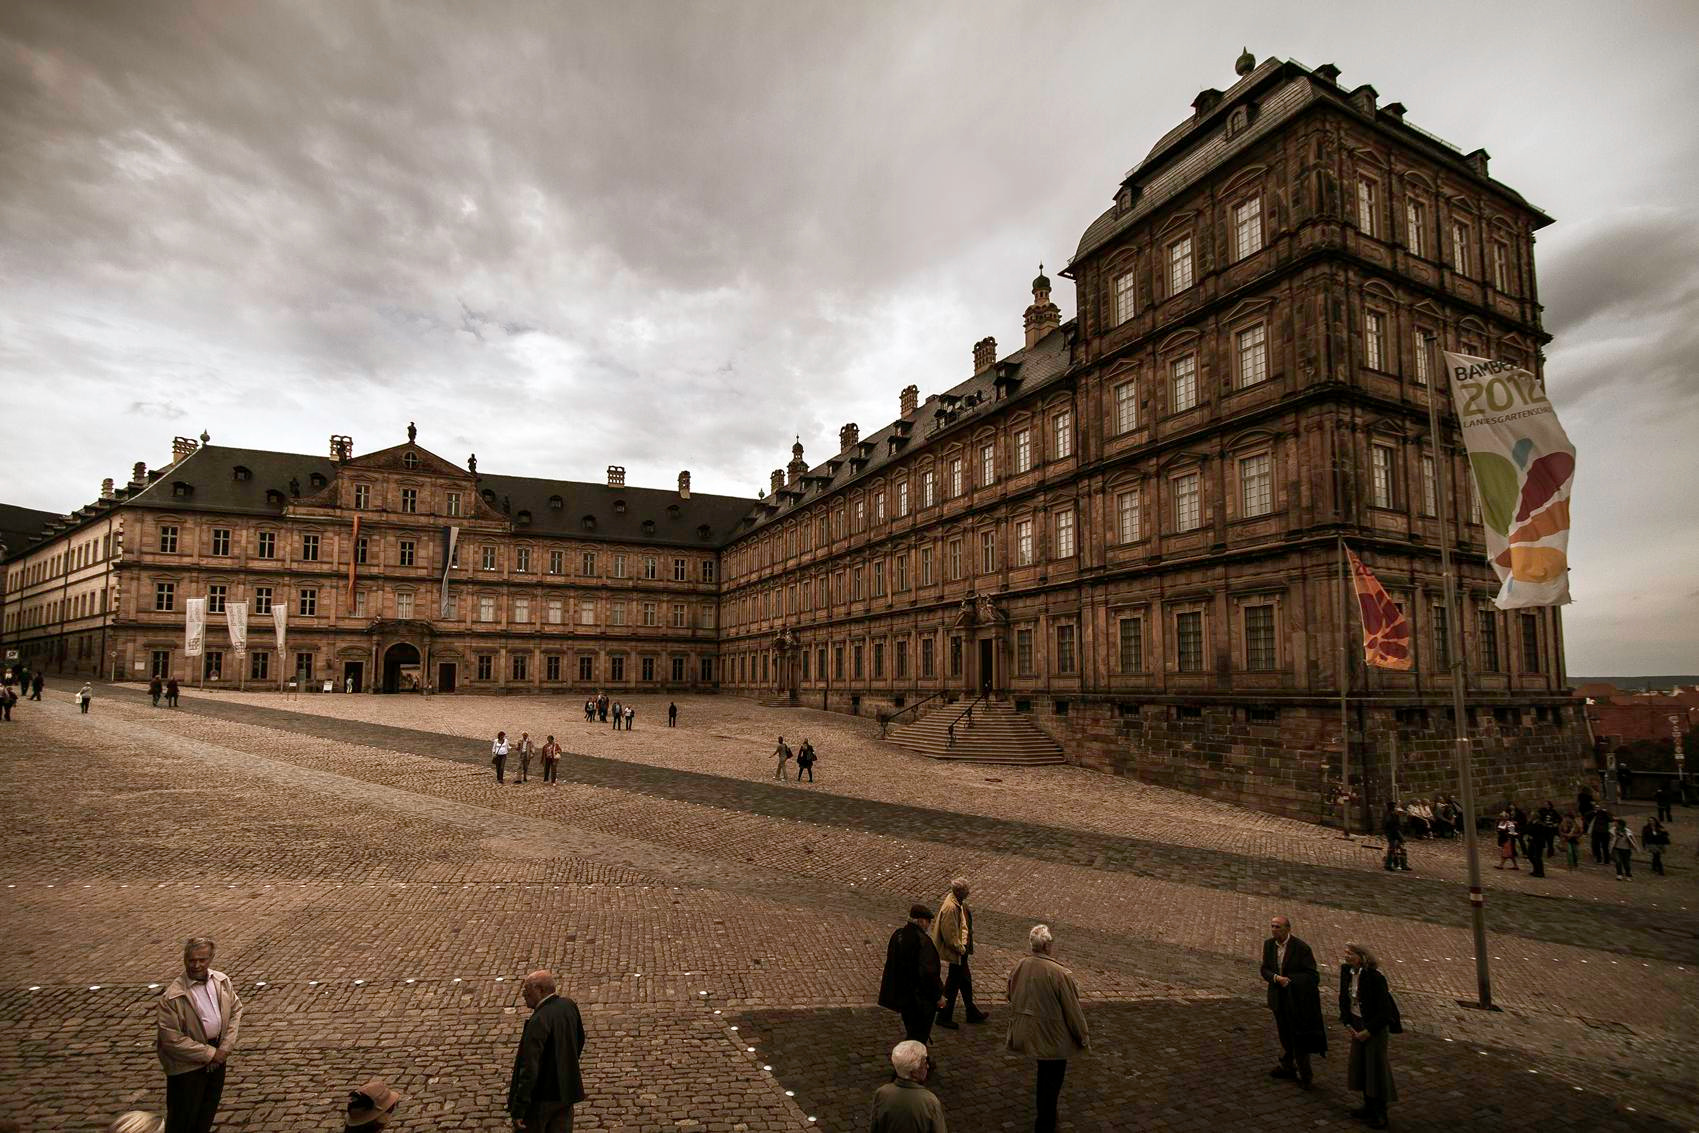 Photograph Bamberg Neue Residenz by Zaoliang Luo on 500px